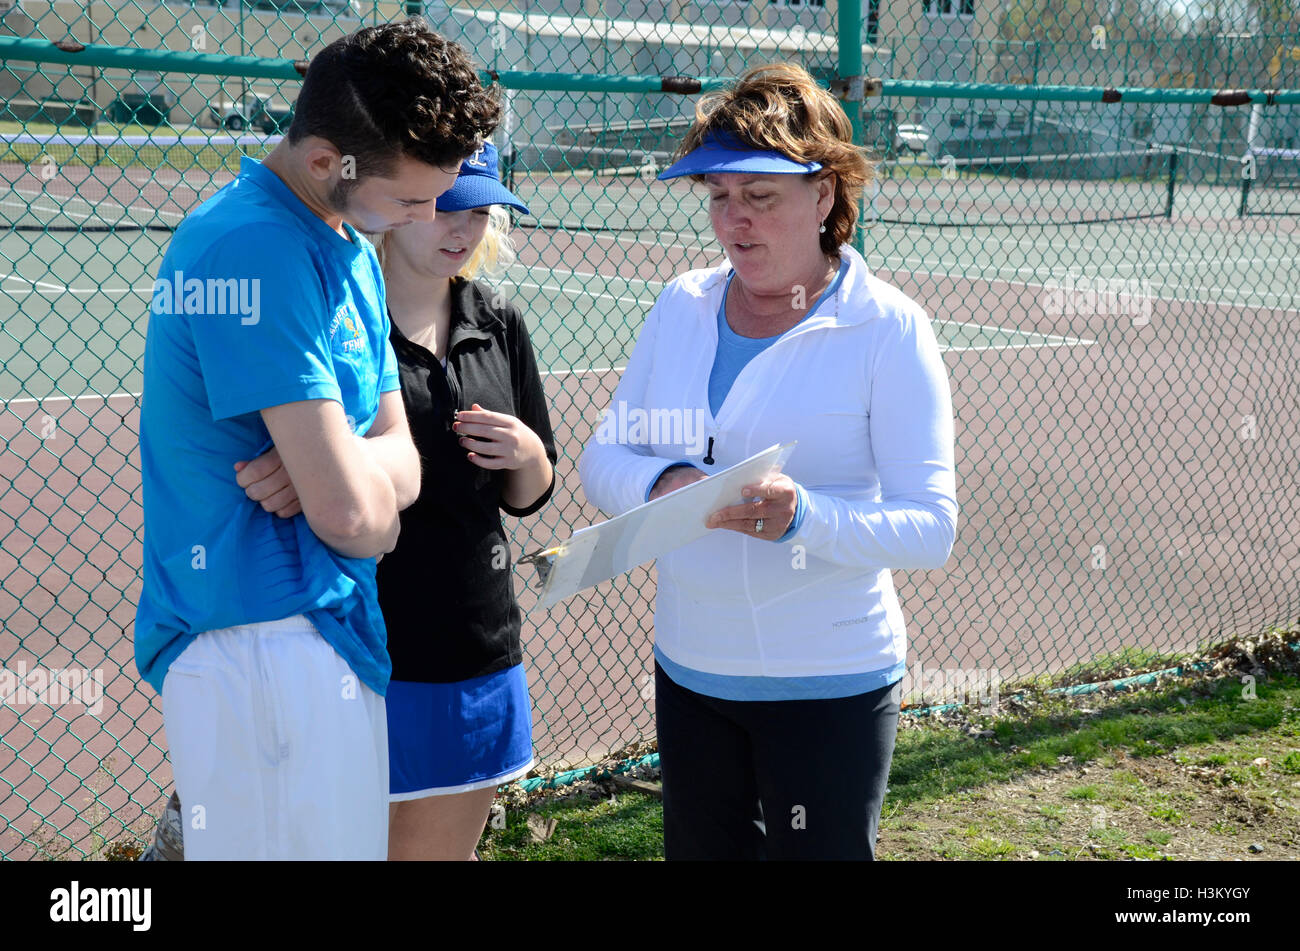 coach talks to teen tennis players about the tennis schedule - Stock Image